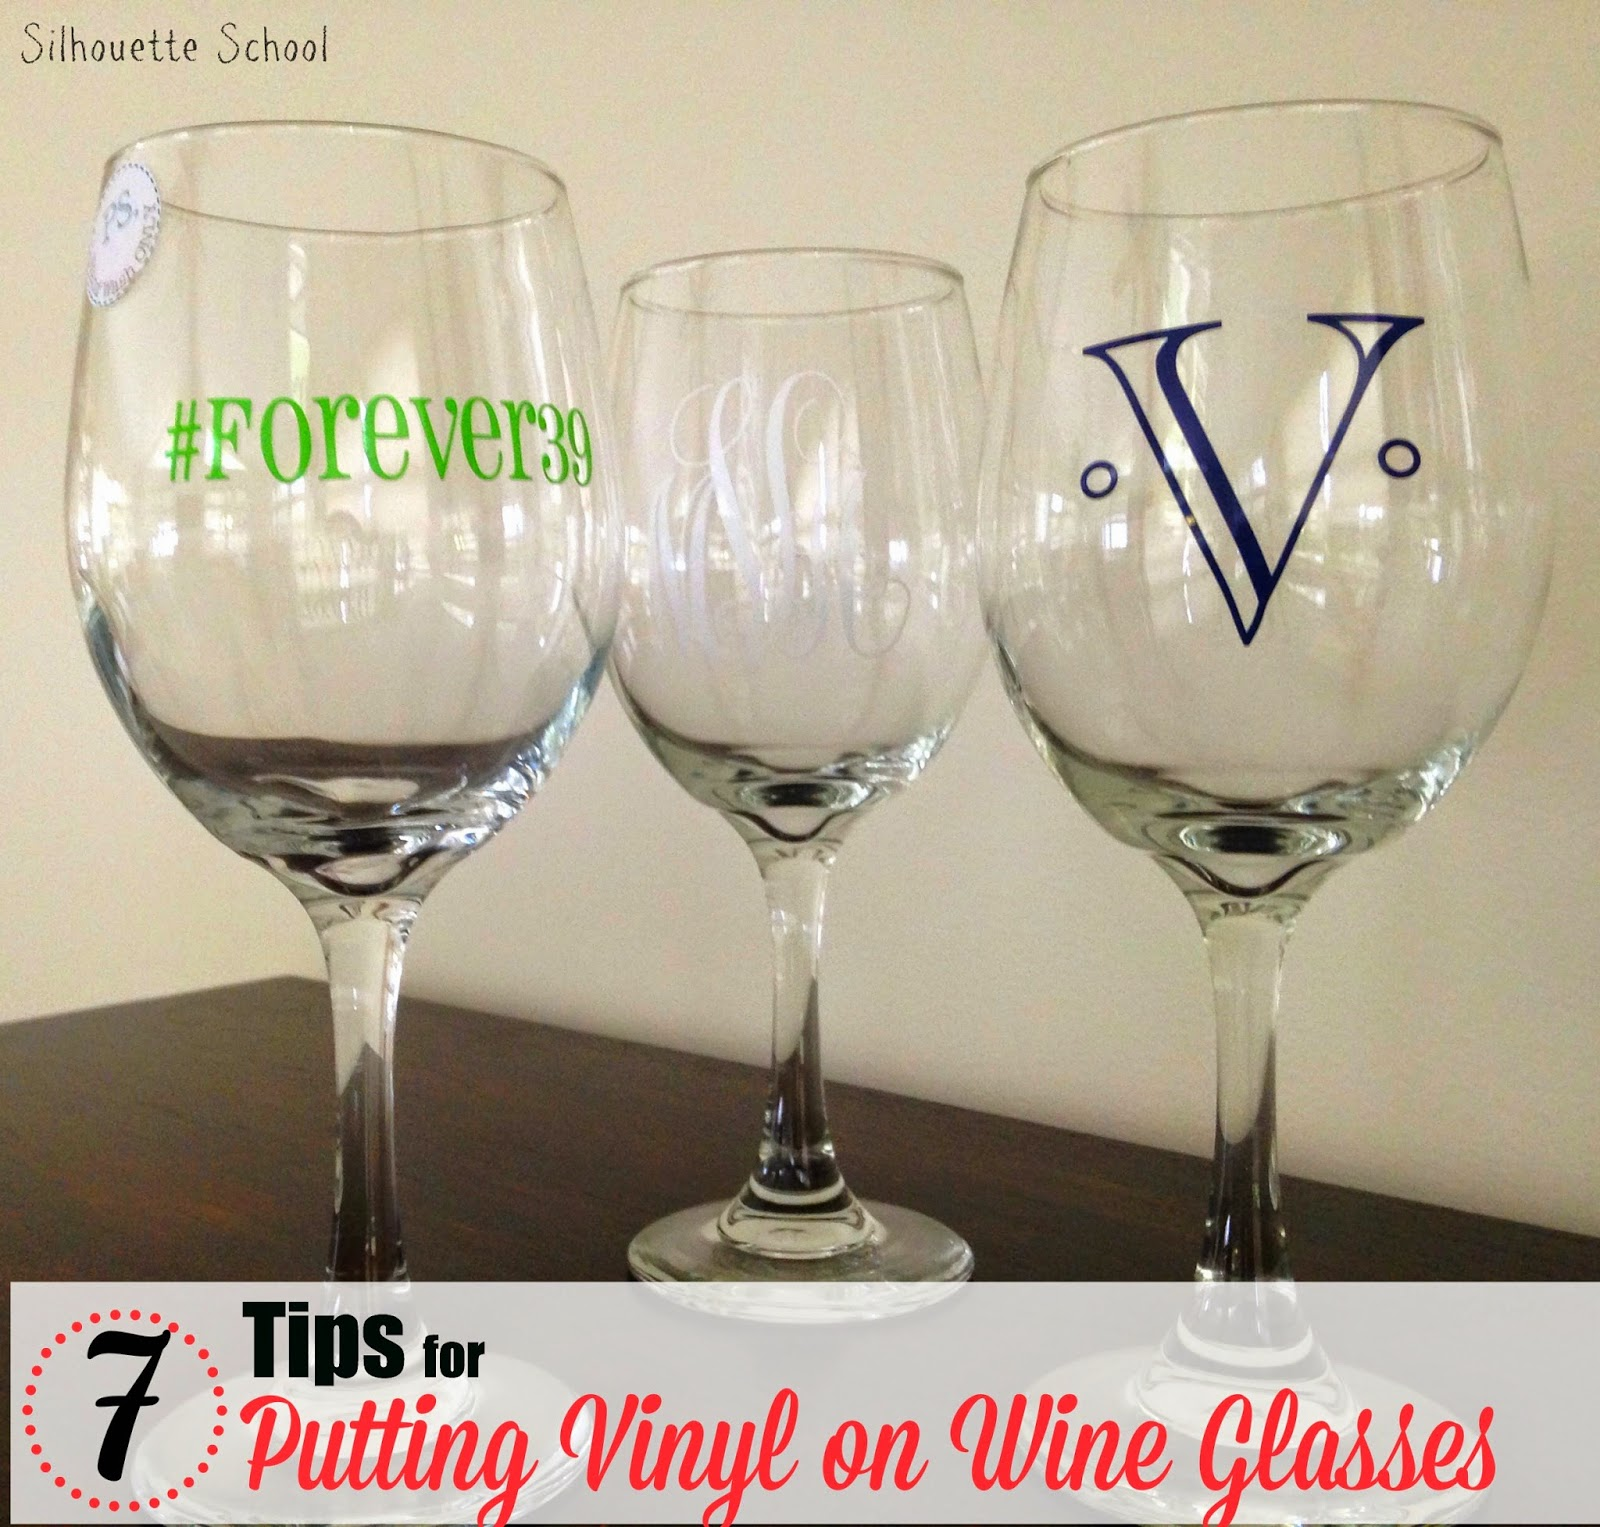 Putting Vinyl On Wine Glasses  Tips For Success Silhouette School - Best vinyl for cups